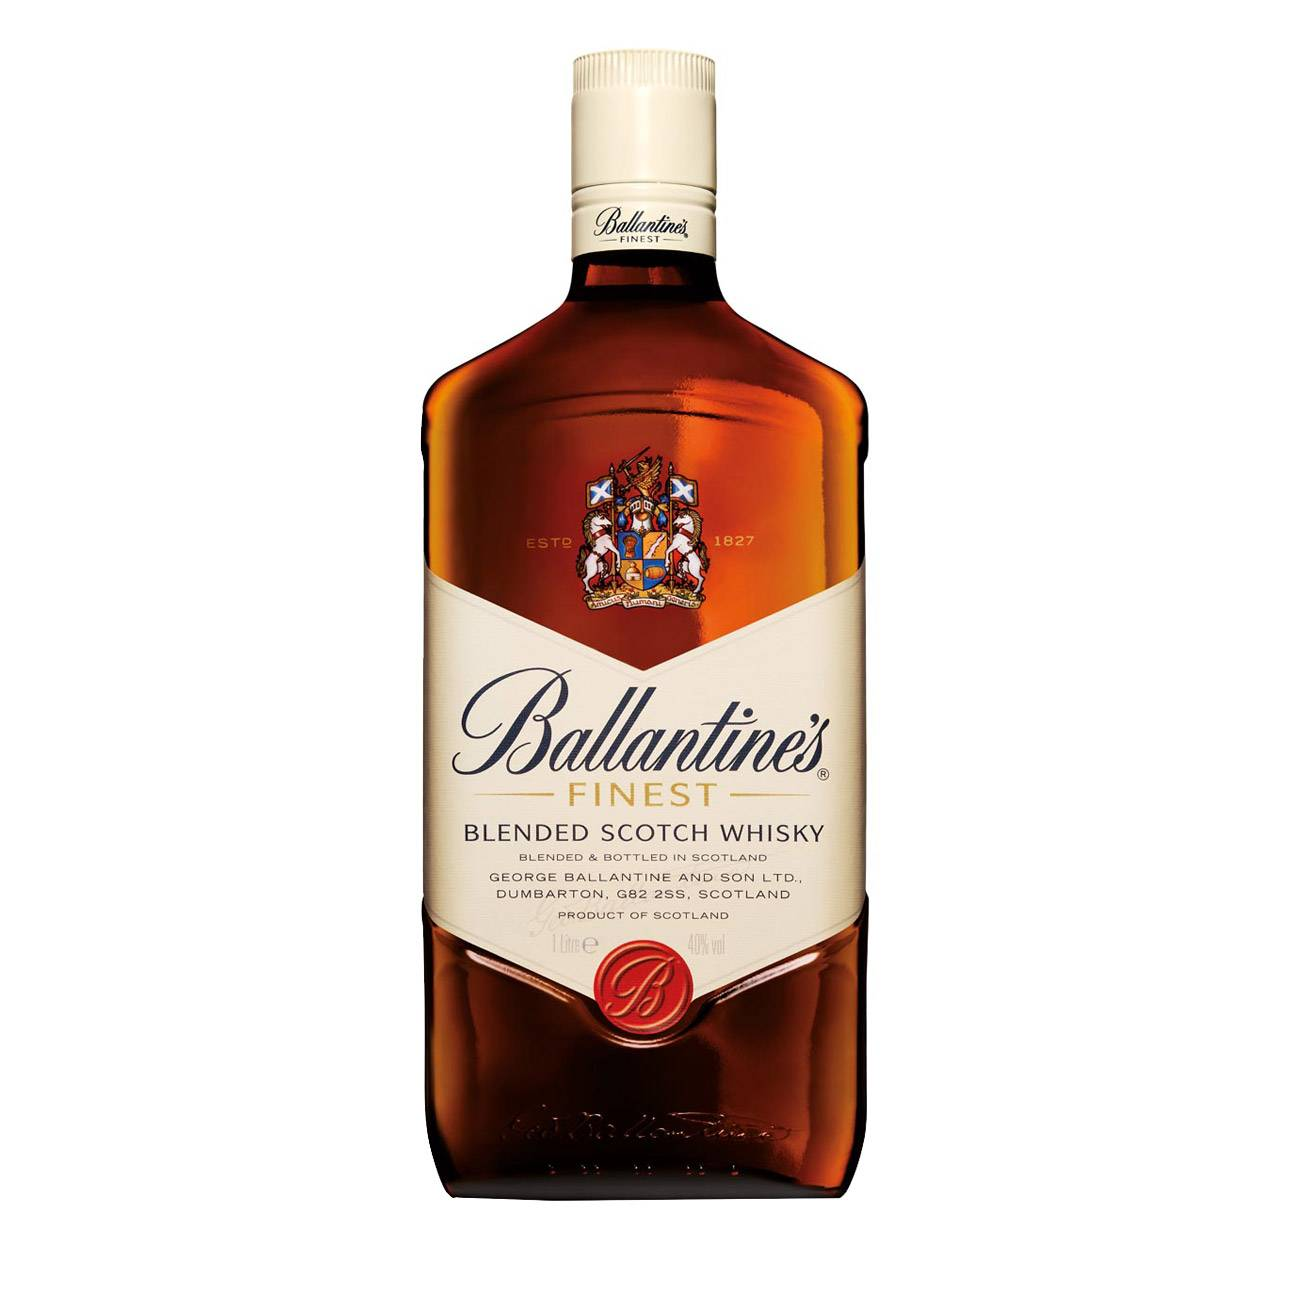 Finest Blended Scotch Eoy 2017 1000 Ml de la Ballantine's